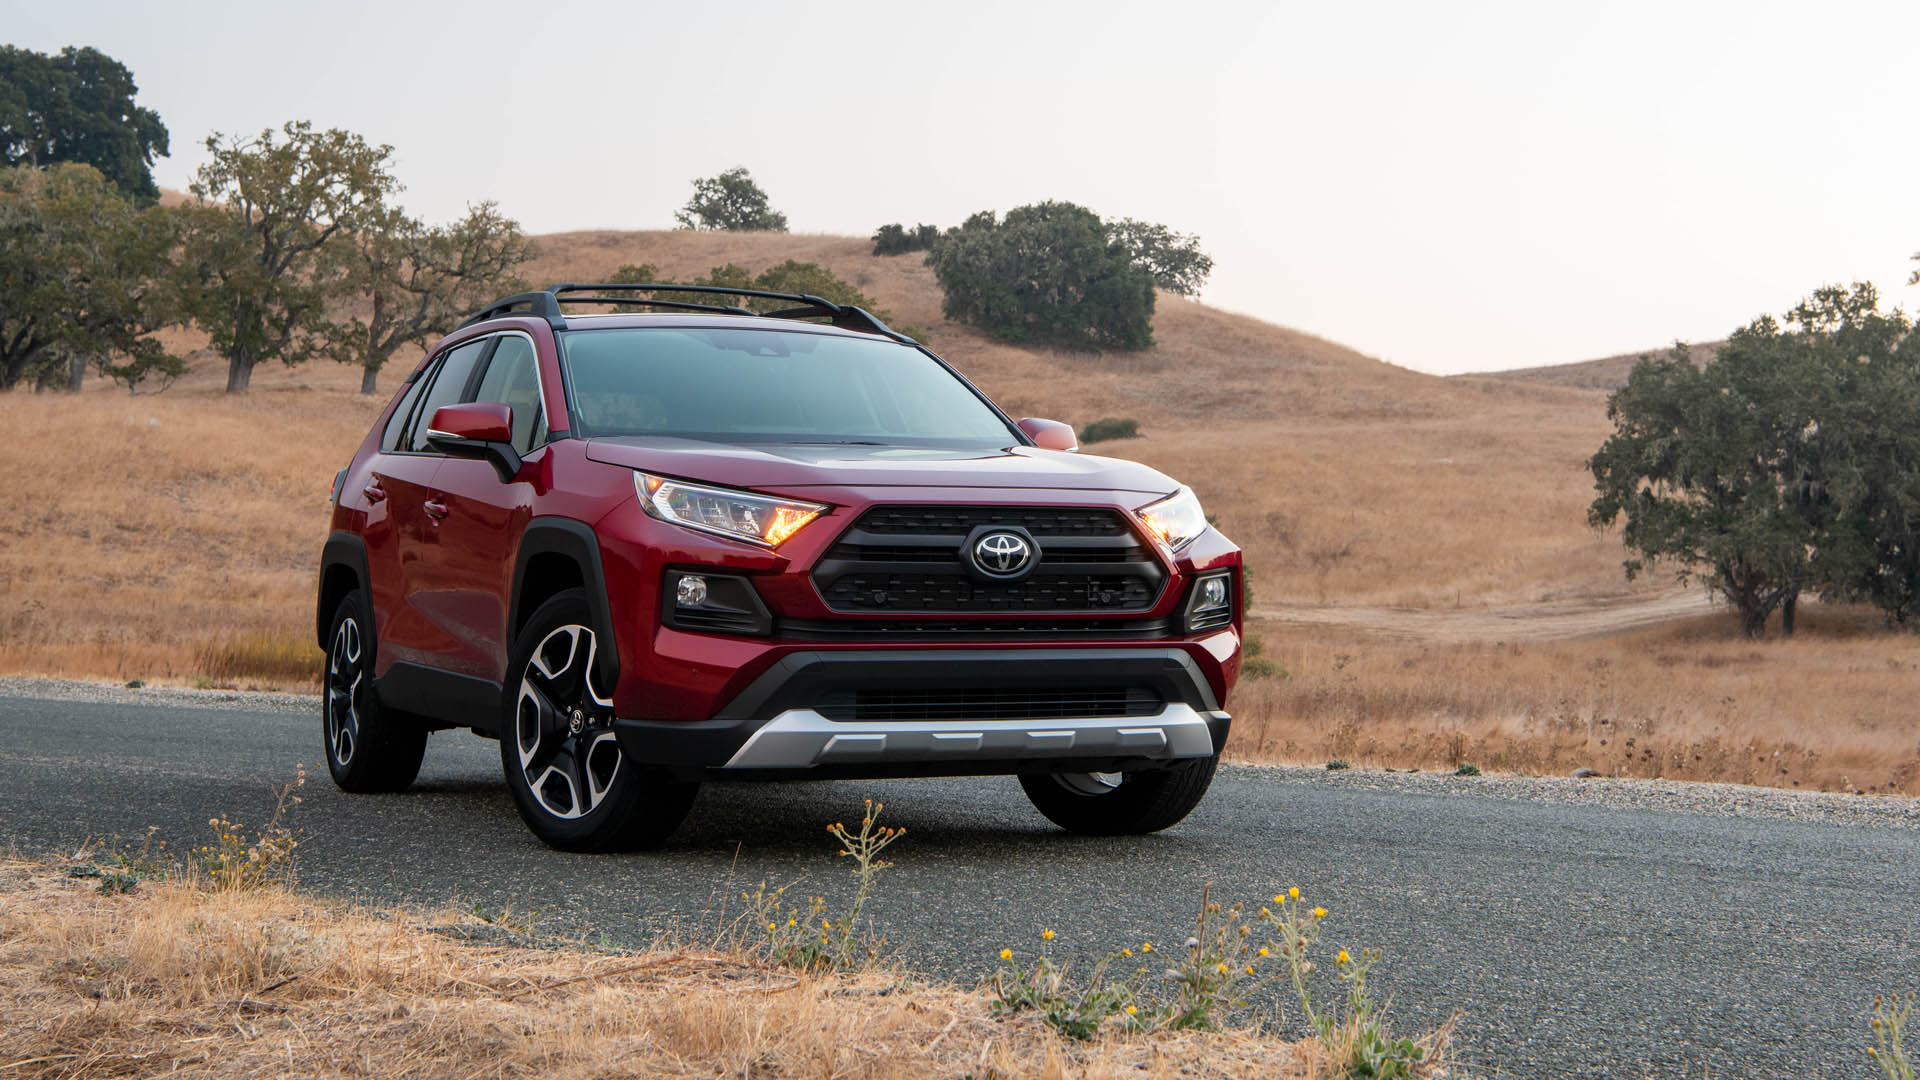 2020 Toyota RAV4 Reviews | Price, specs, features and ...